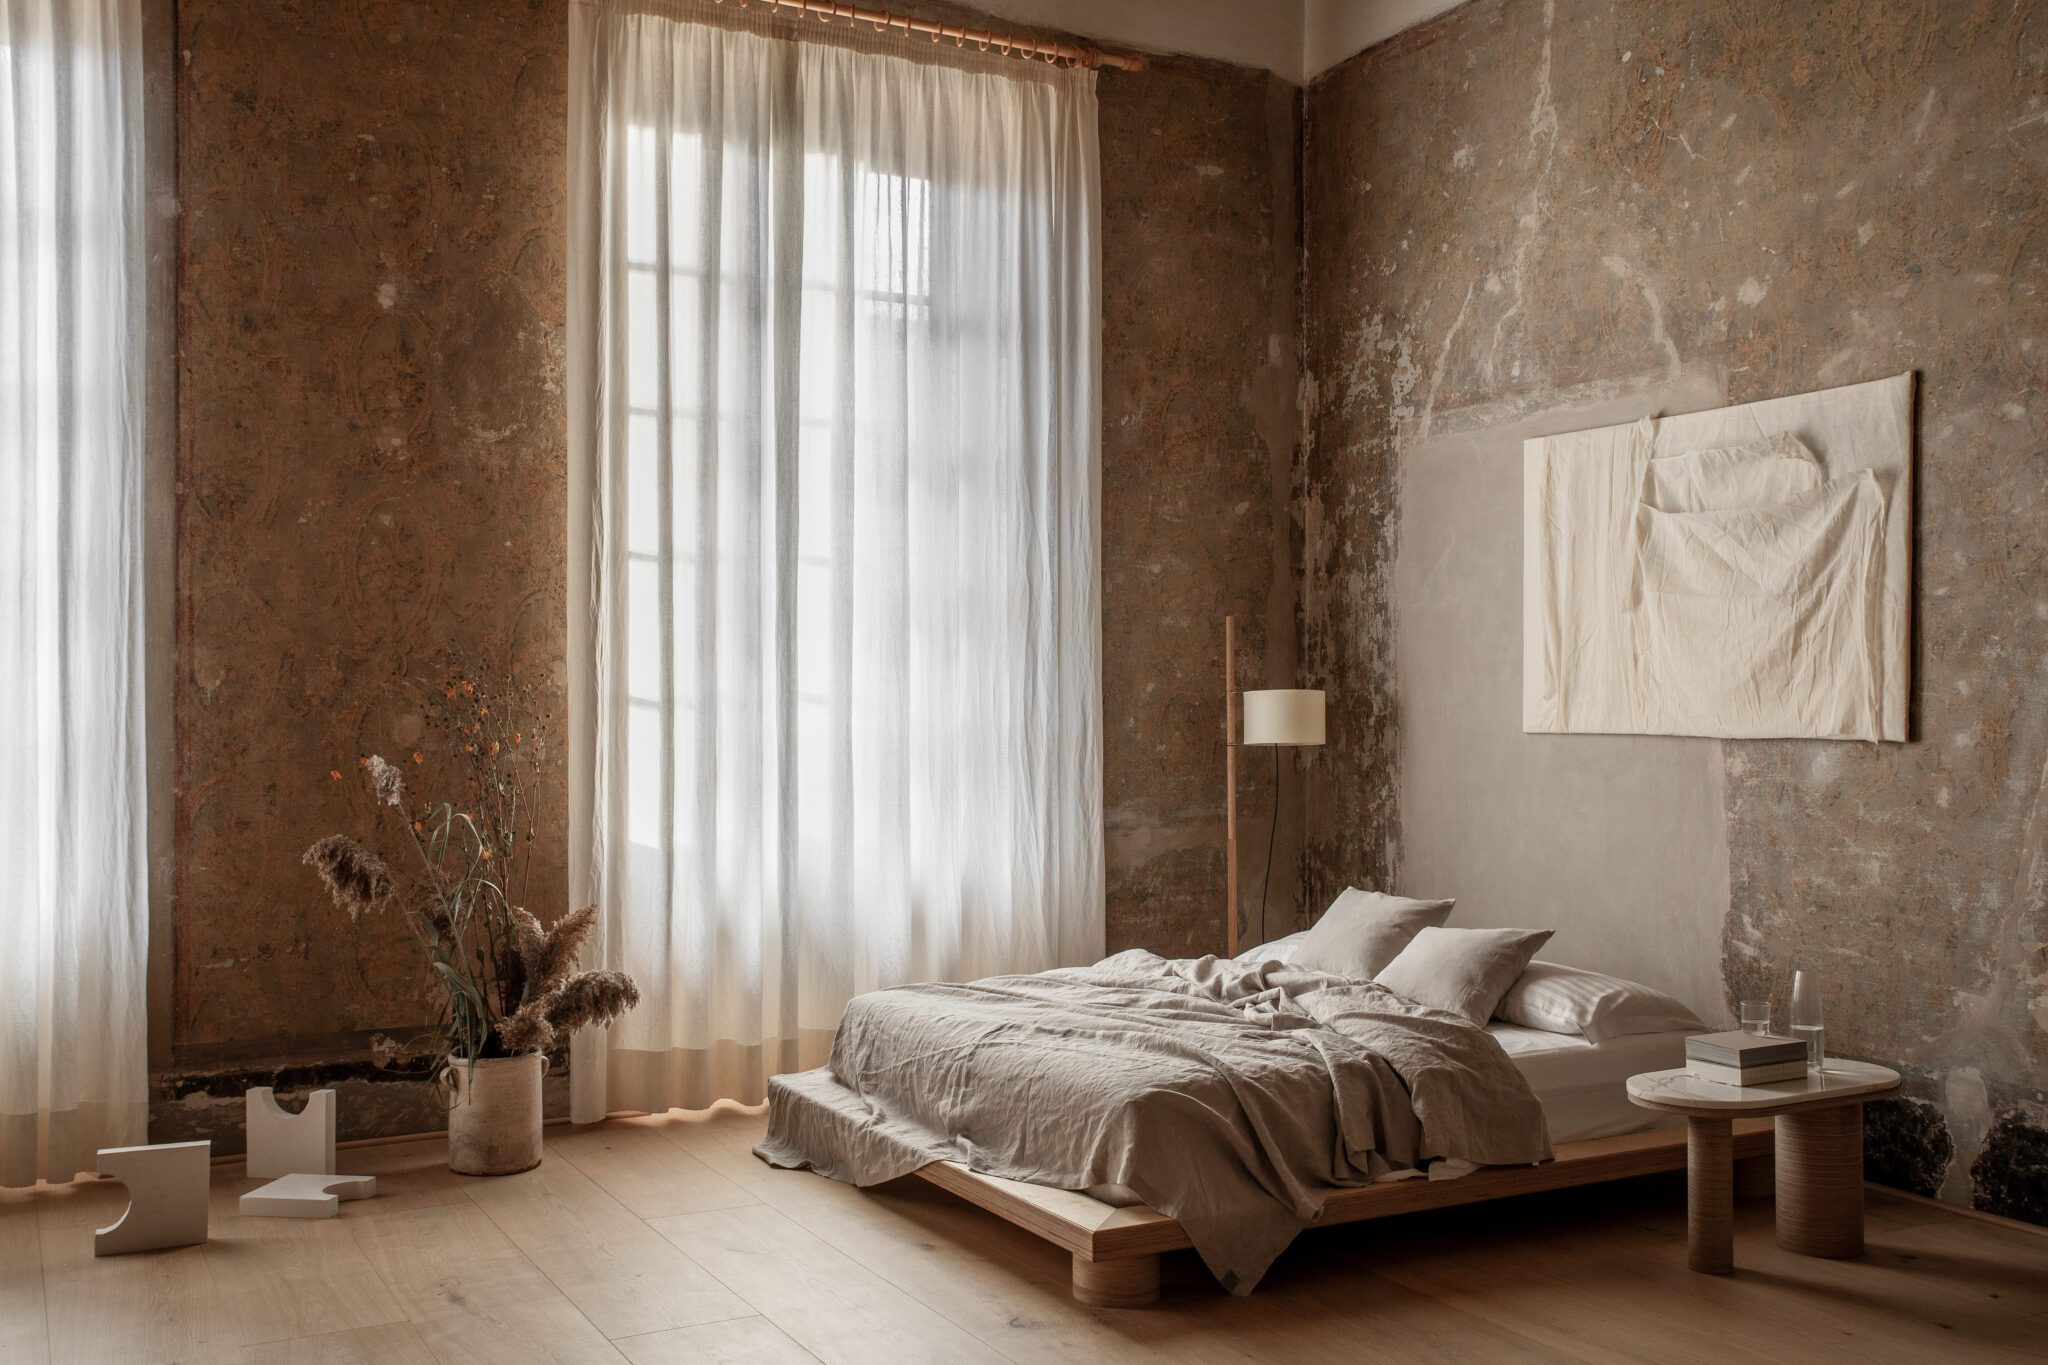 Nest Italy - Top Floor Suites in a Design Residency in Florence